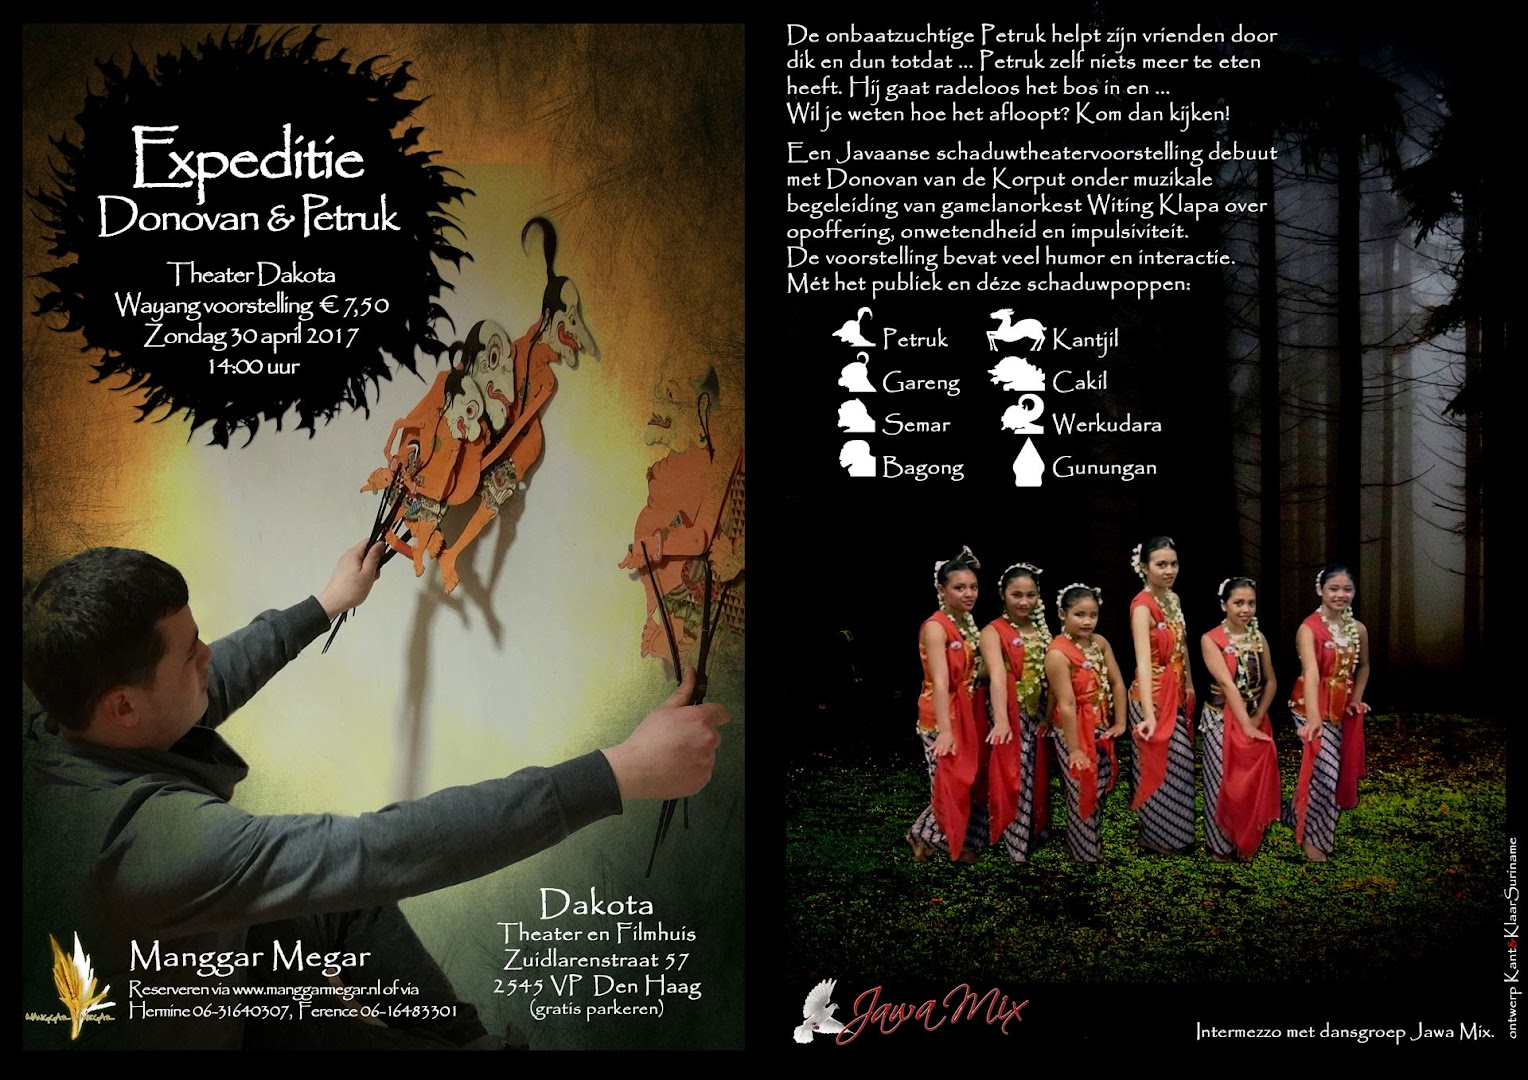 Wayang Kulit Expeditie met Petruk en Donovan in Theater Dakota